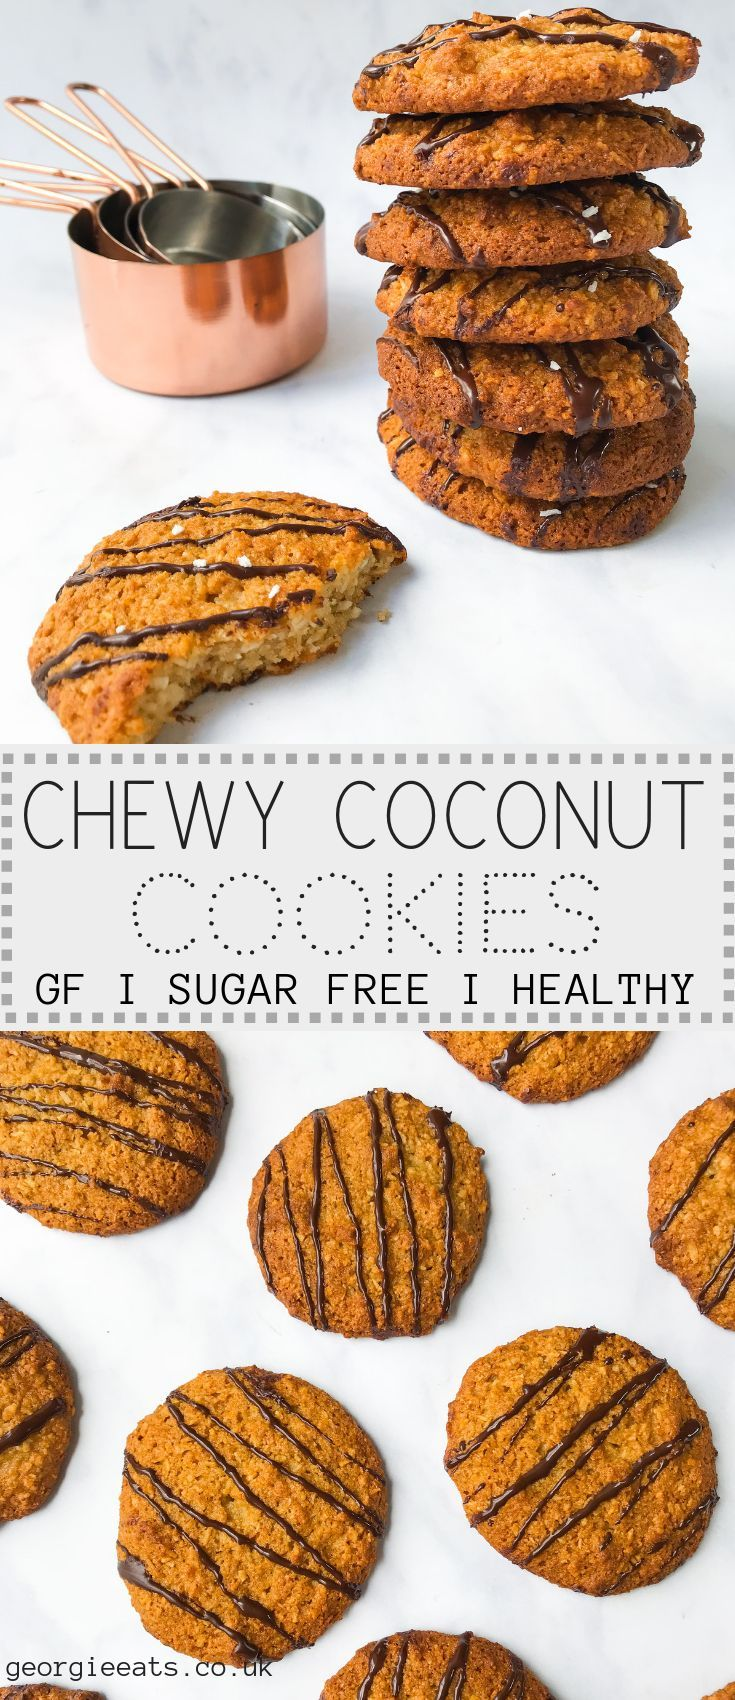 Chewy coconut cookies with a dark chocolate drizzle images